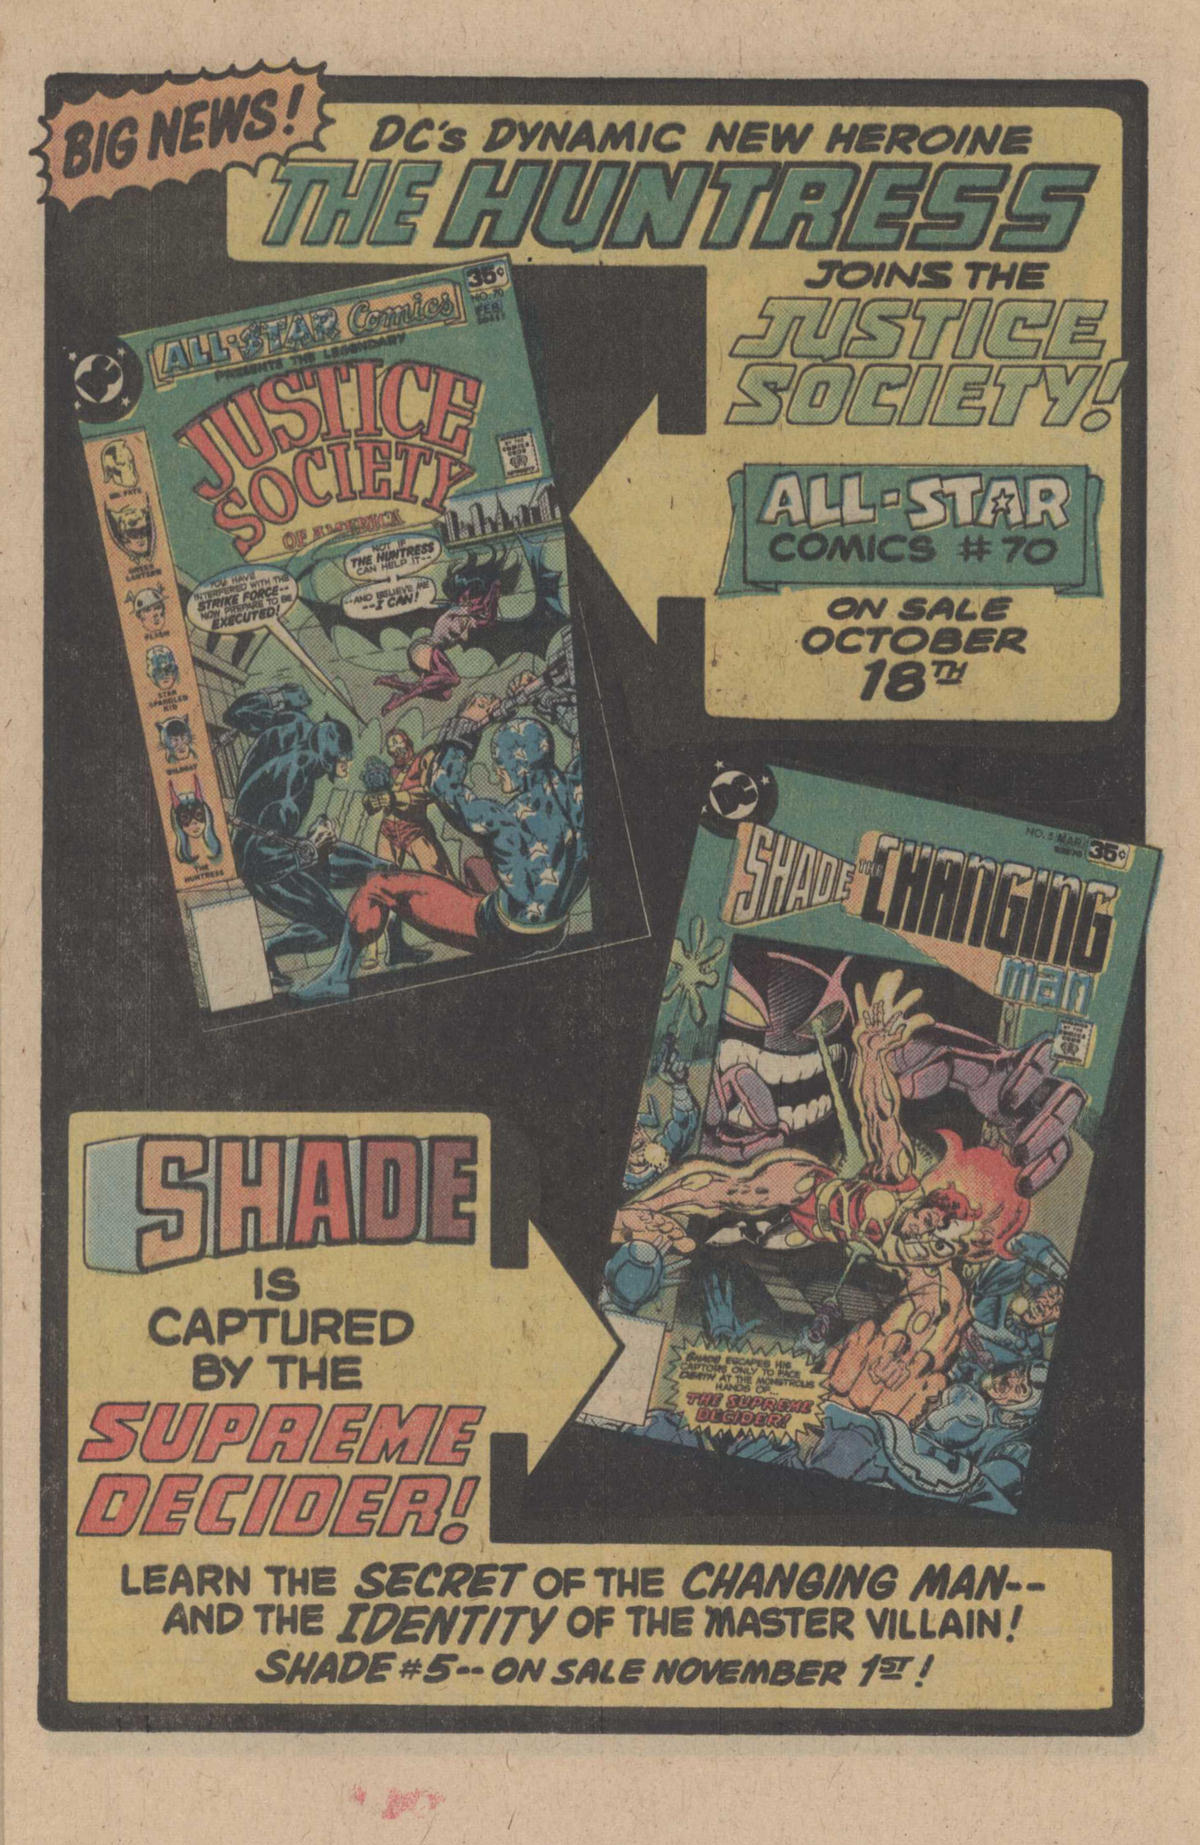 Read online All-Star Comics comic -  Issue #70 - 24